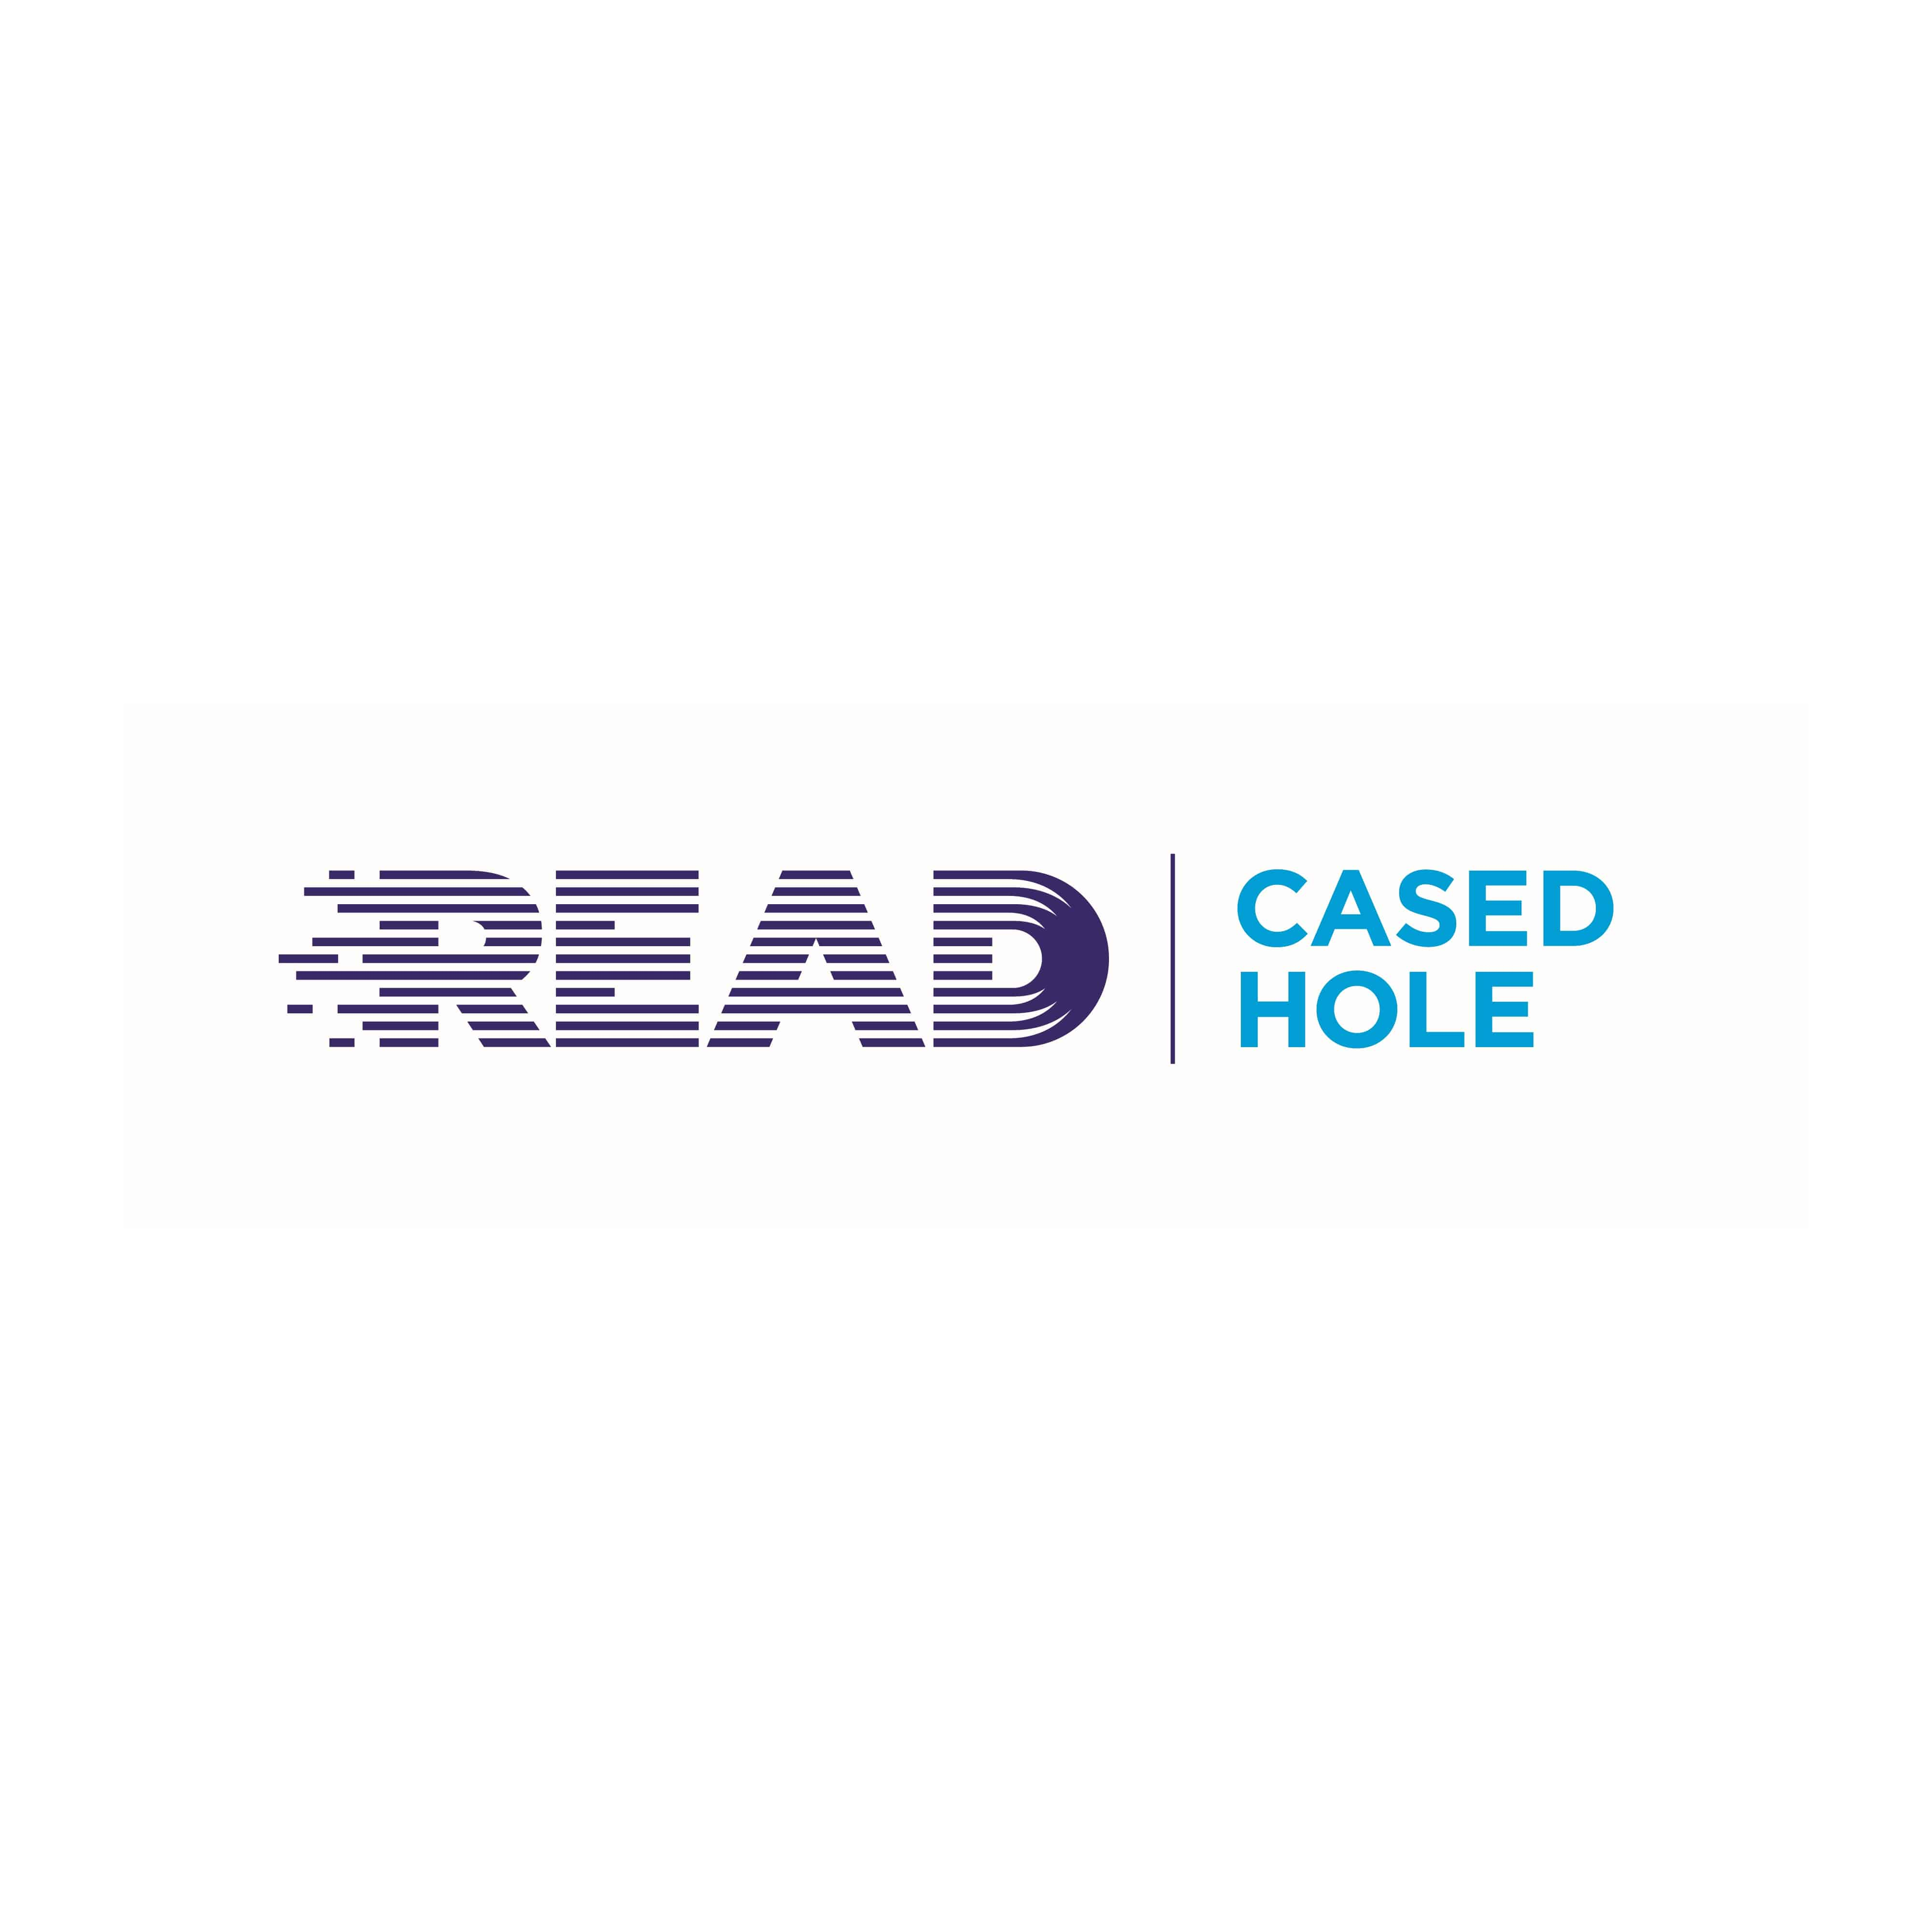 READ Cased Hole